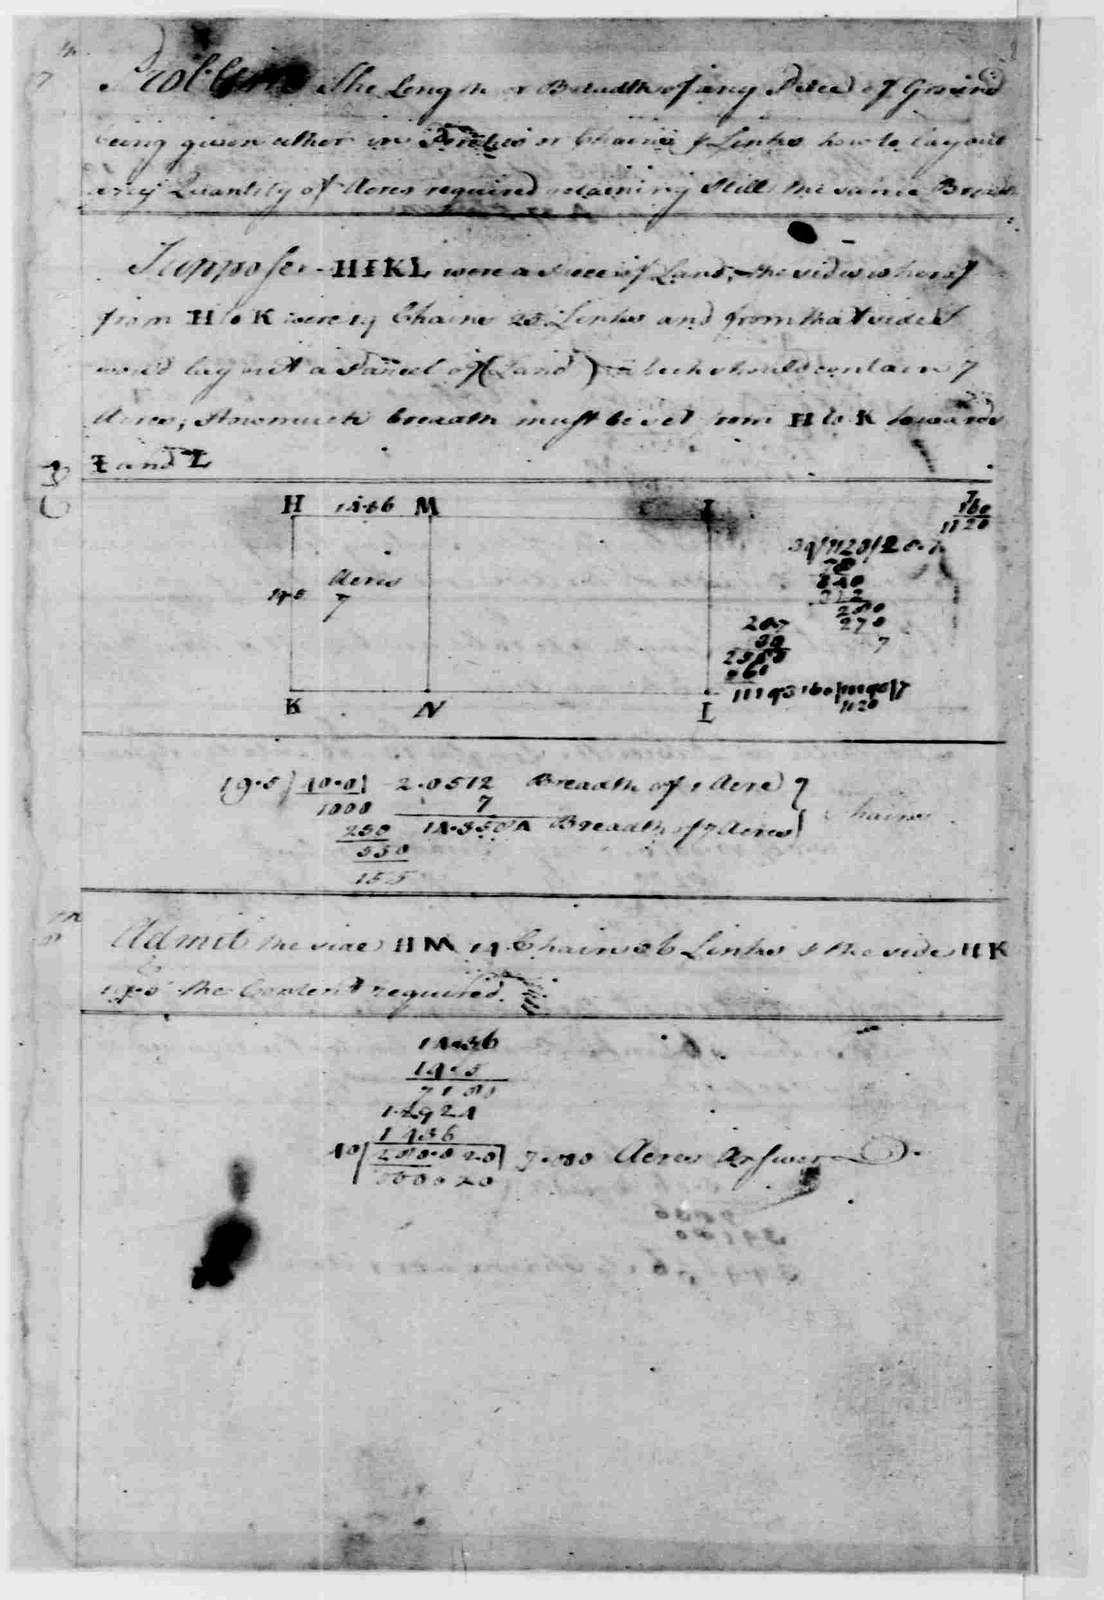 George Washington Papers, Series 1, Exercise Books, Diaries, and Surveys 1745-99, Subseries 1A, Exercise Books 1745-1747: School Copy Book, Volume 2, 1745